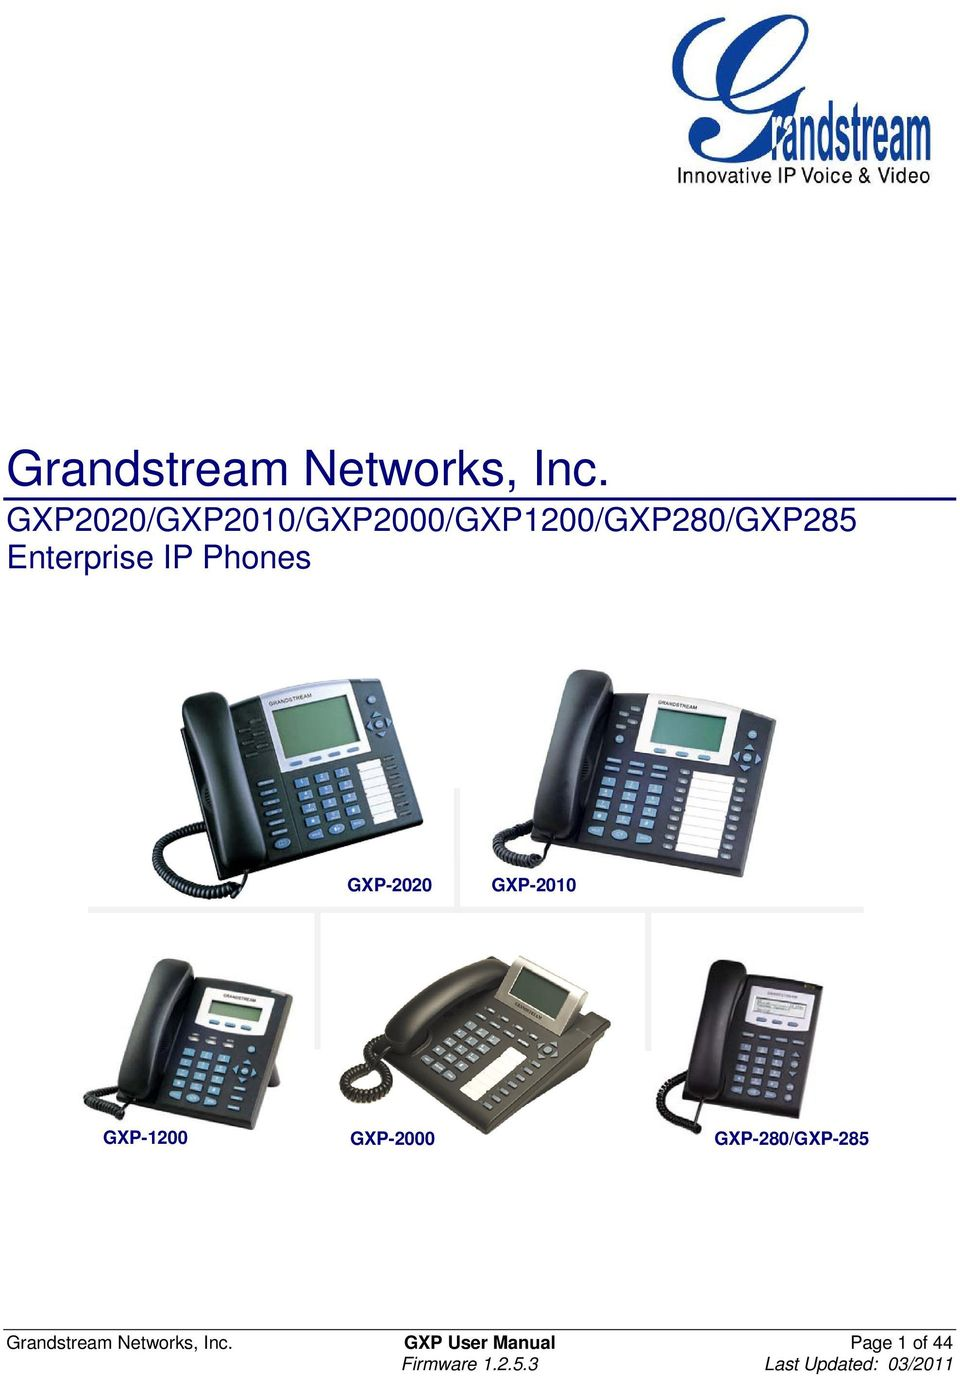 Enterprise IP Phones GXP-2020 GXP-2010 GXP-1200